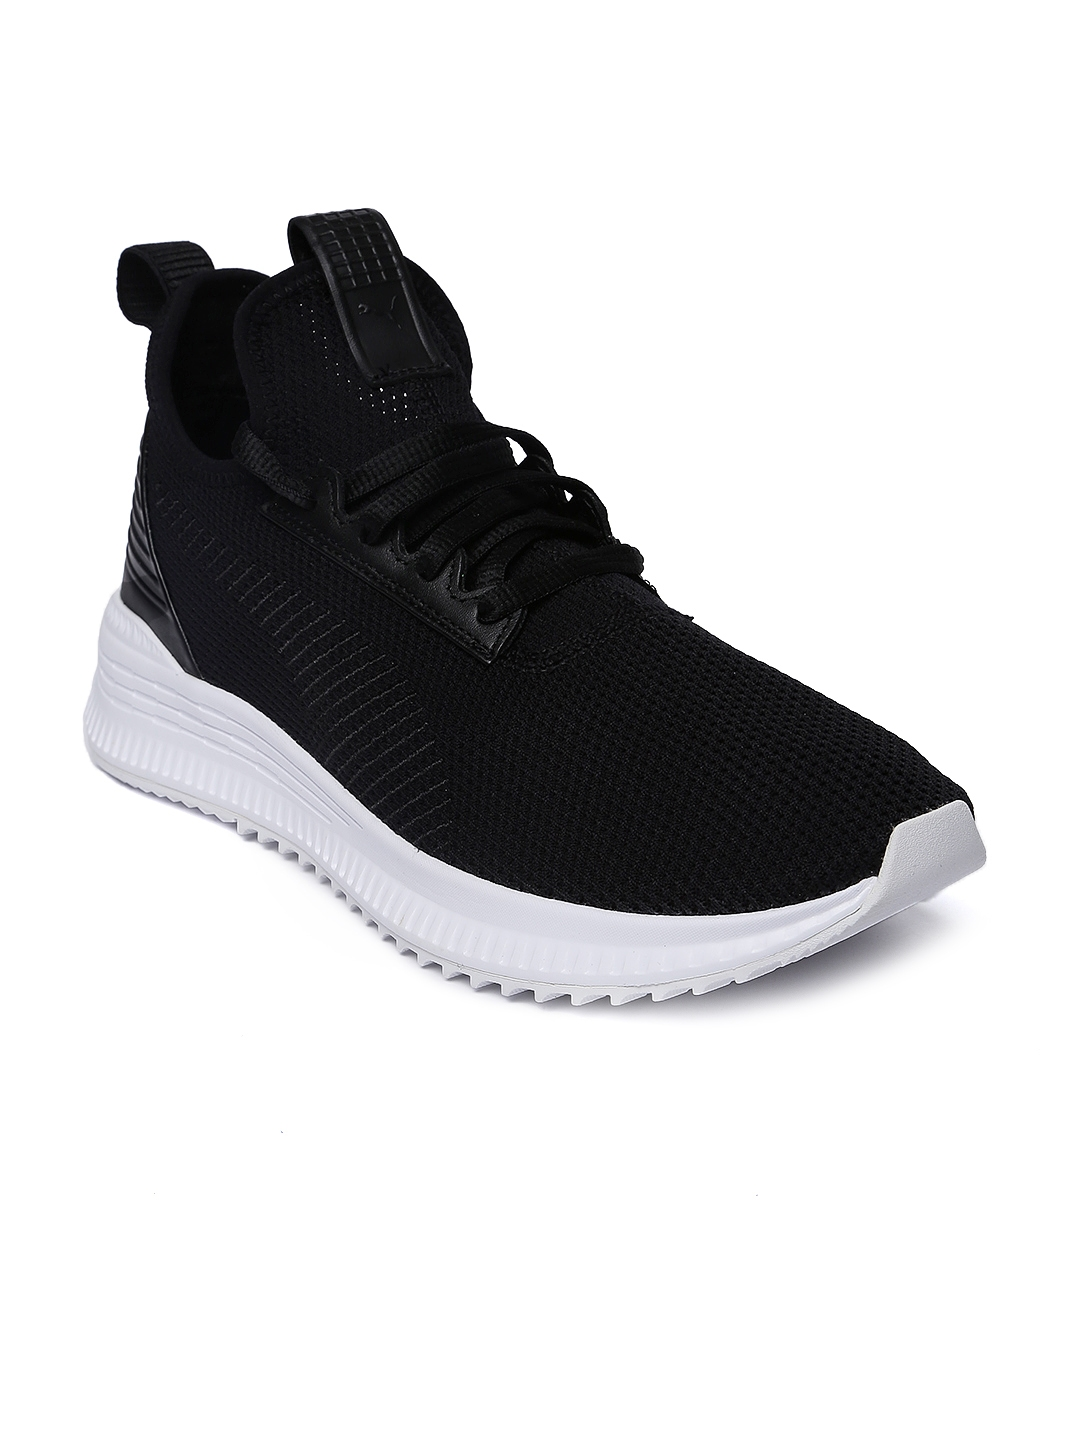 1f43678baf4 Buy Puma Men Black AVID FoF Sneakers - Casual Shoes for Men 7073082 ...